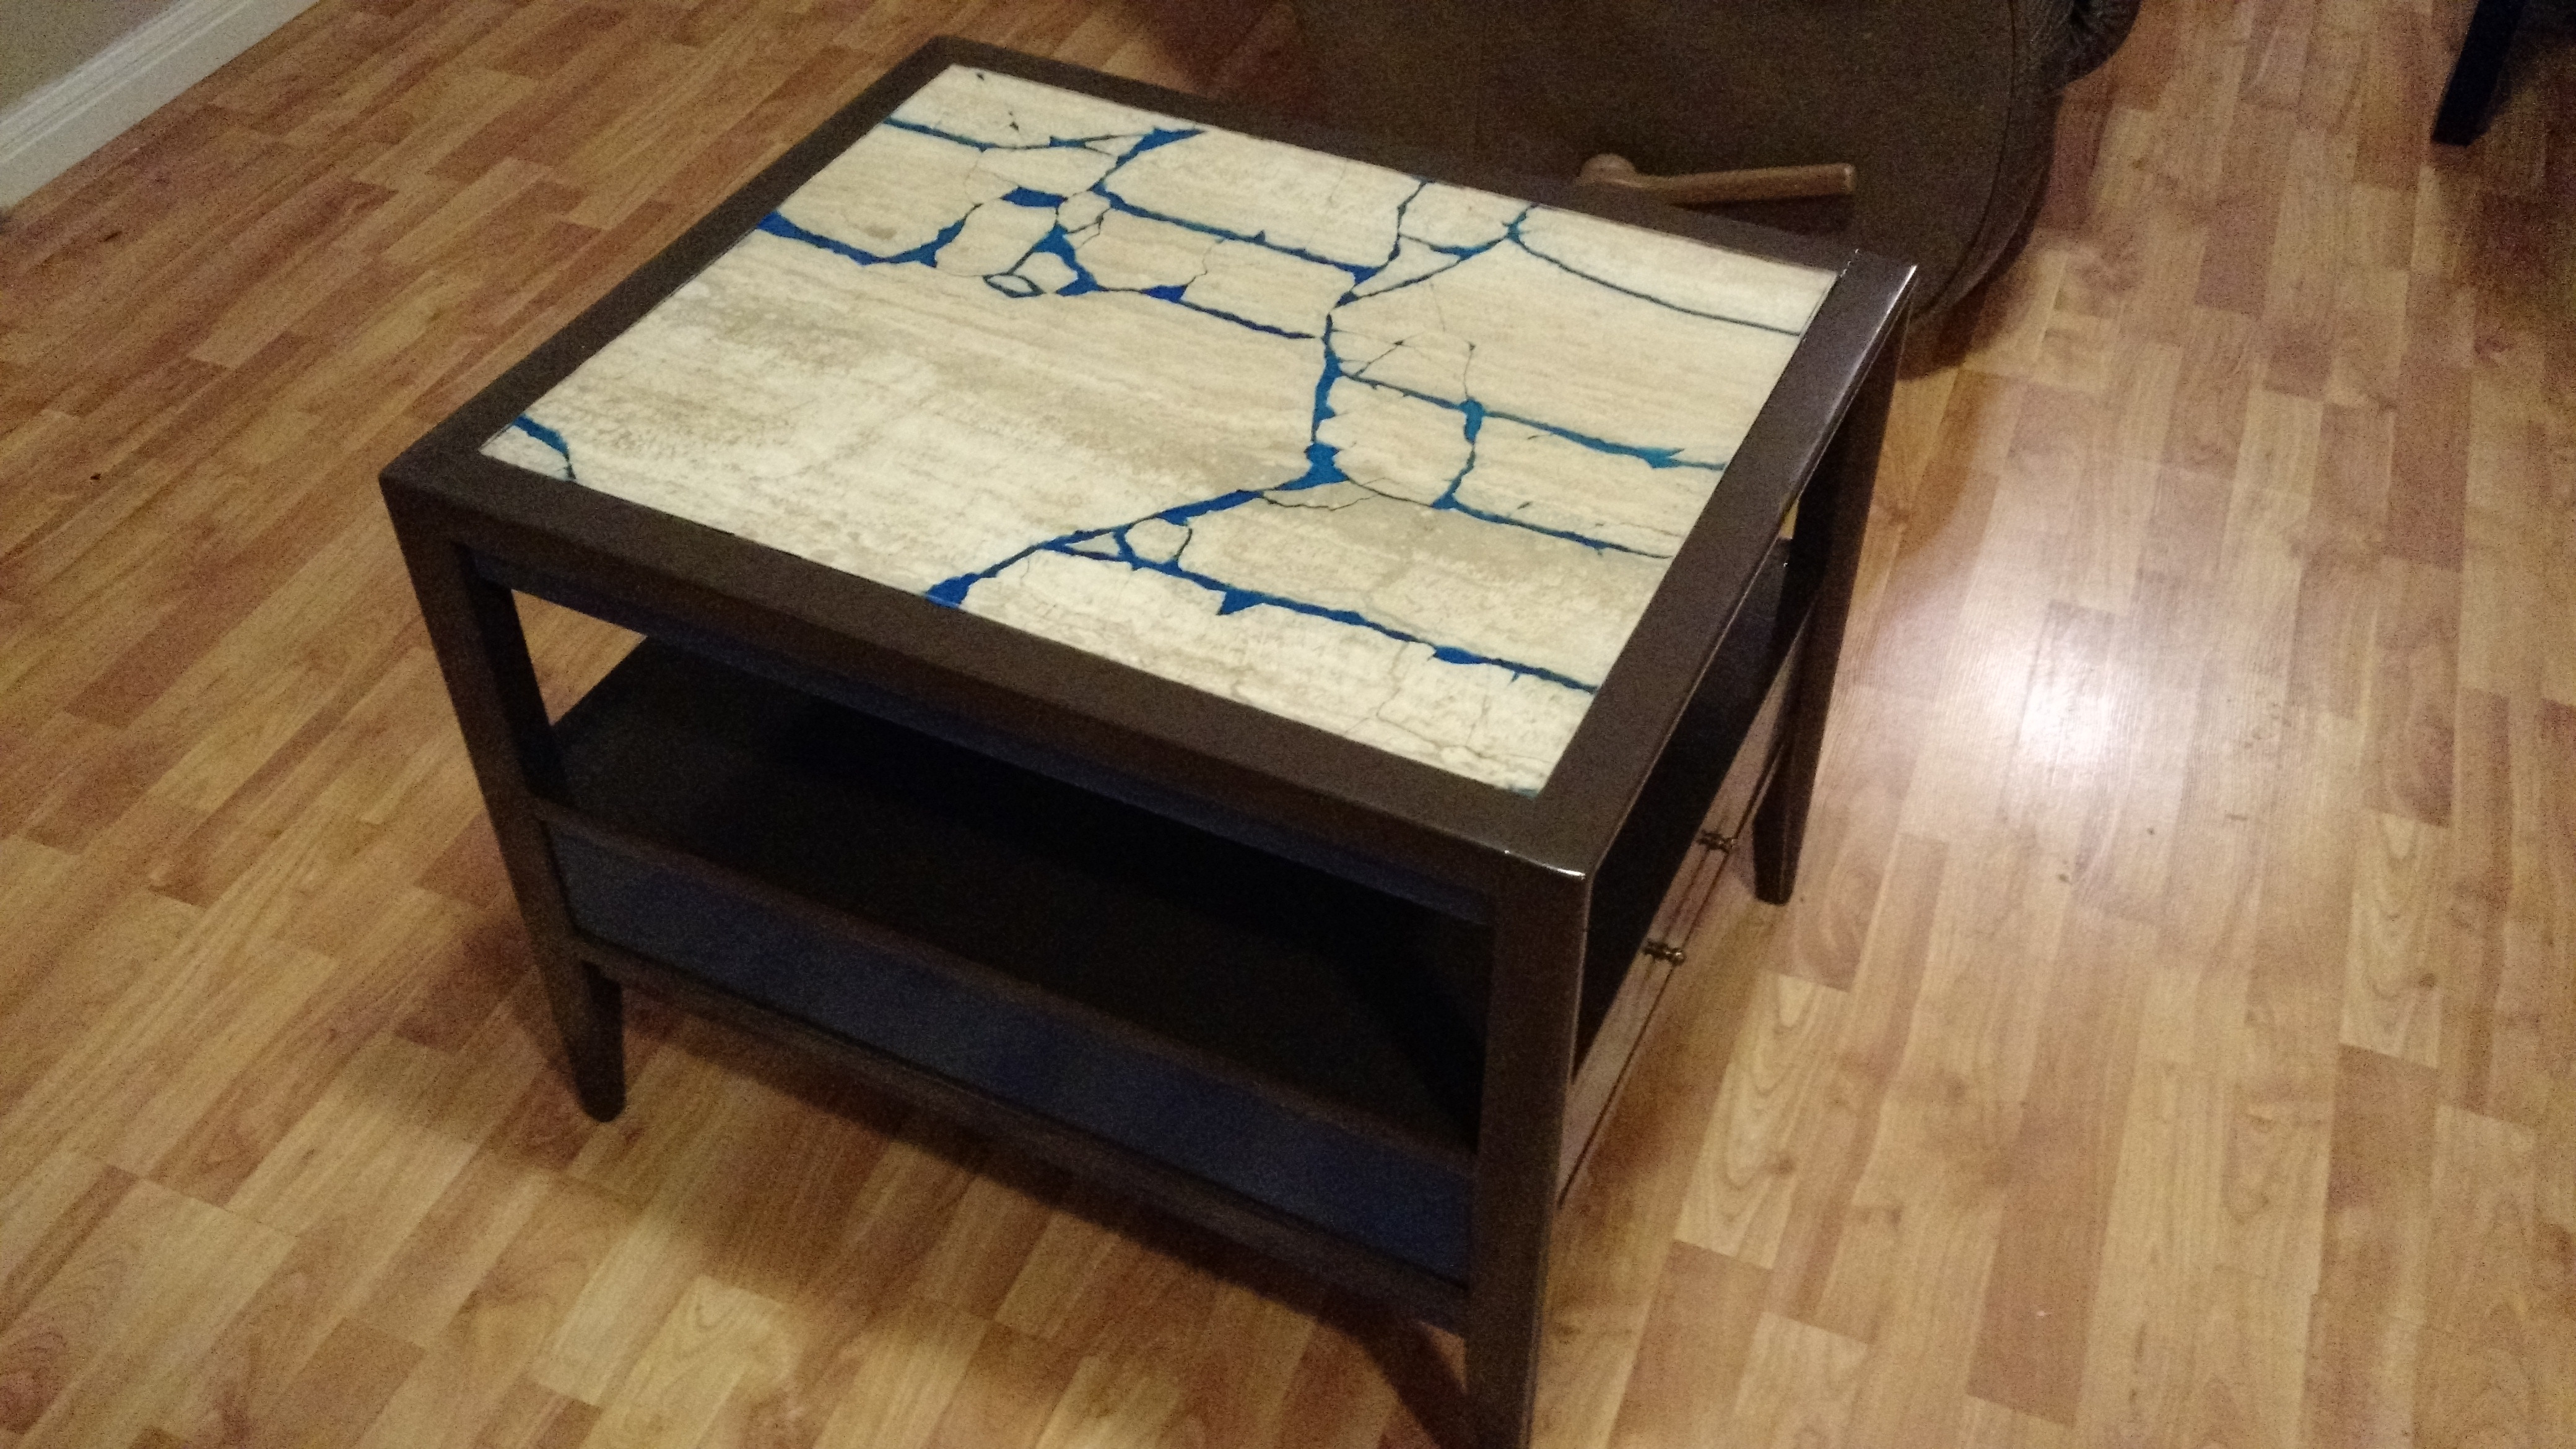 Refurbished glow in the dark marble end table.